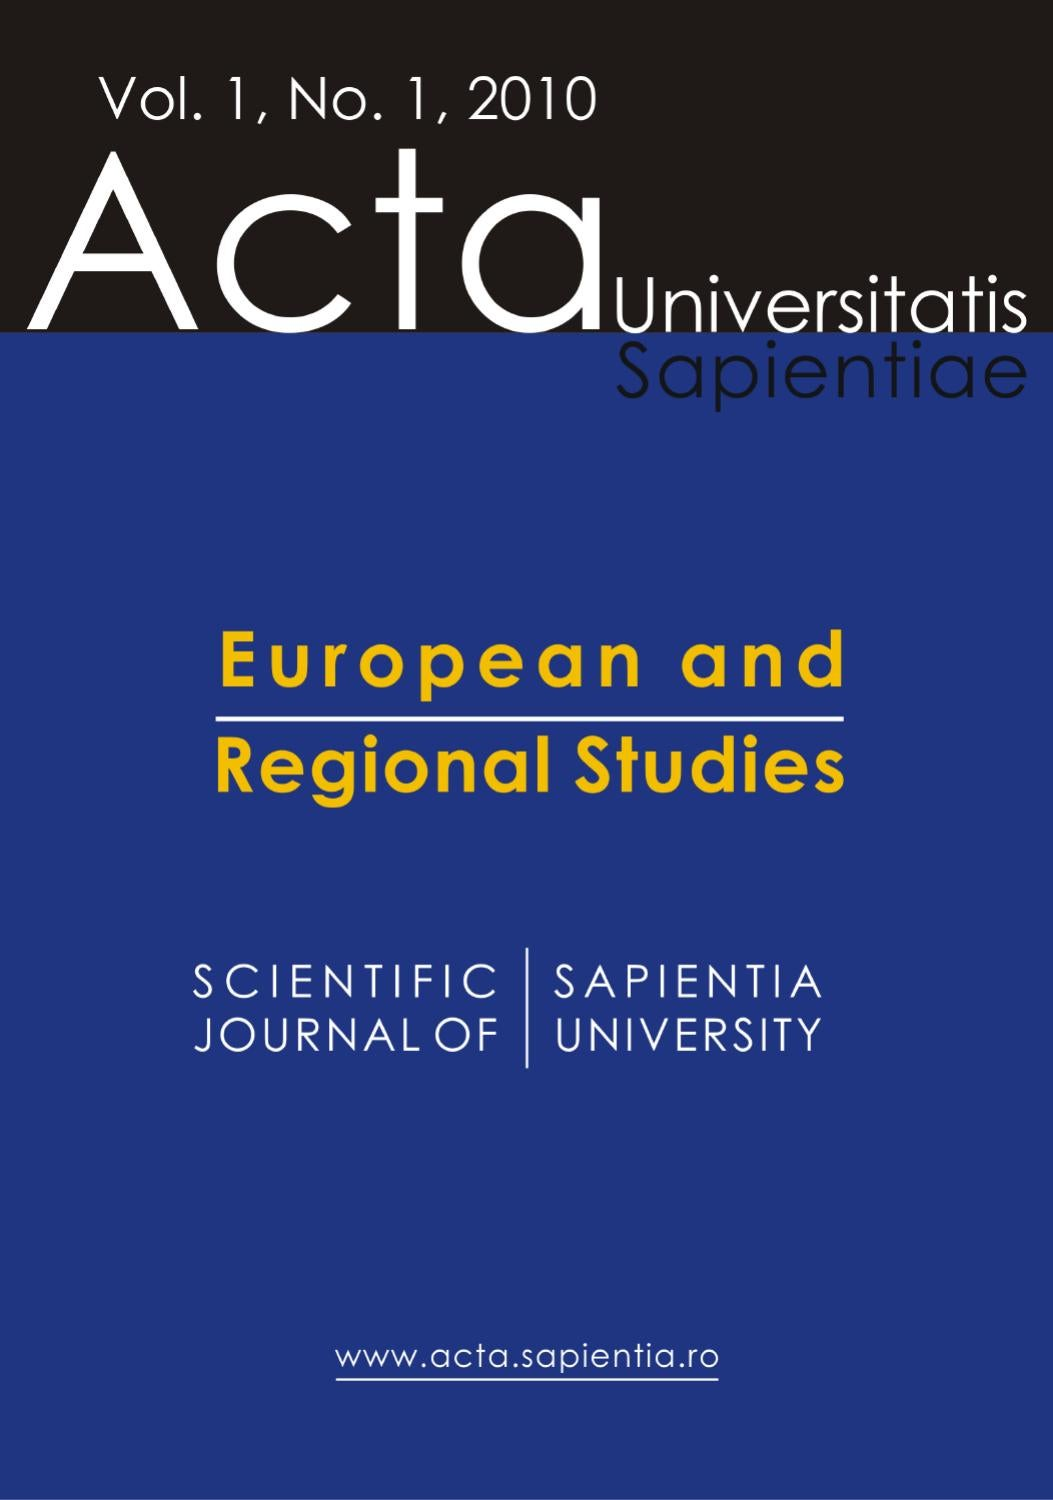 European and Regional Studies Vol  1, No  1, 2010 by Acta